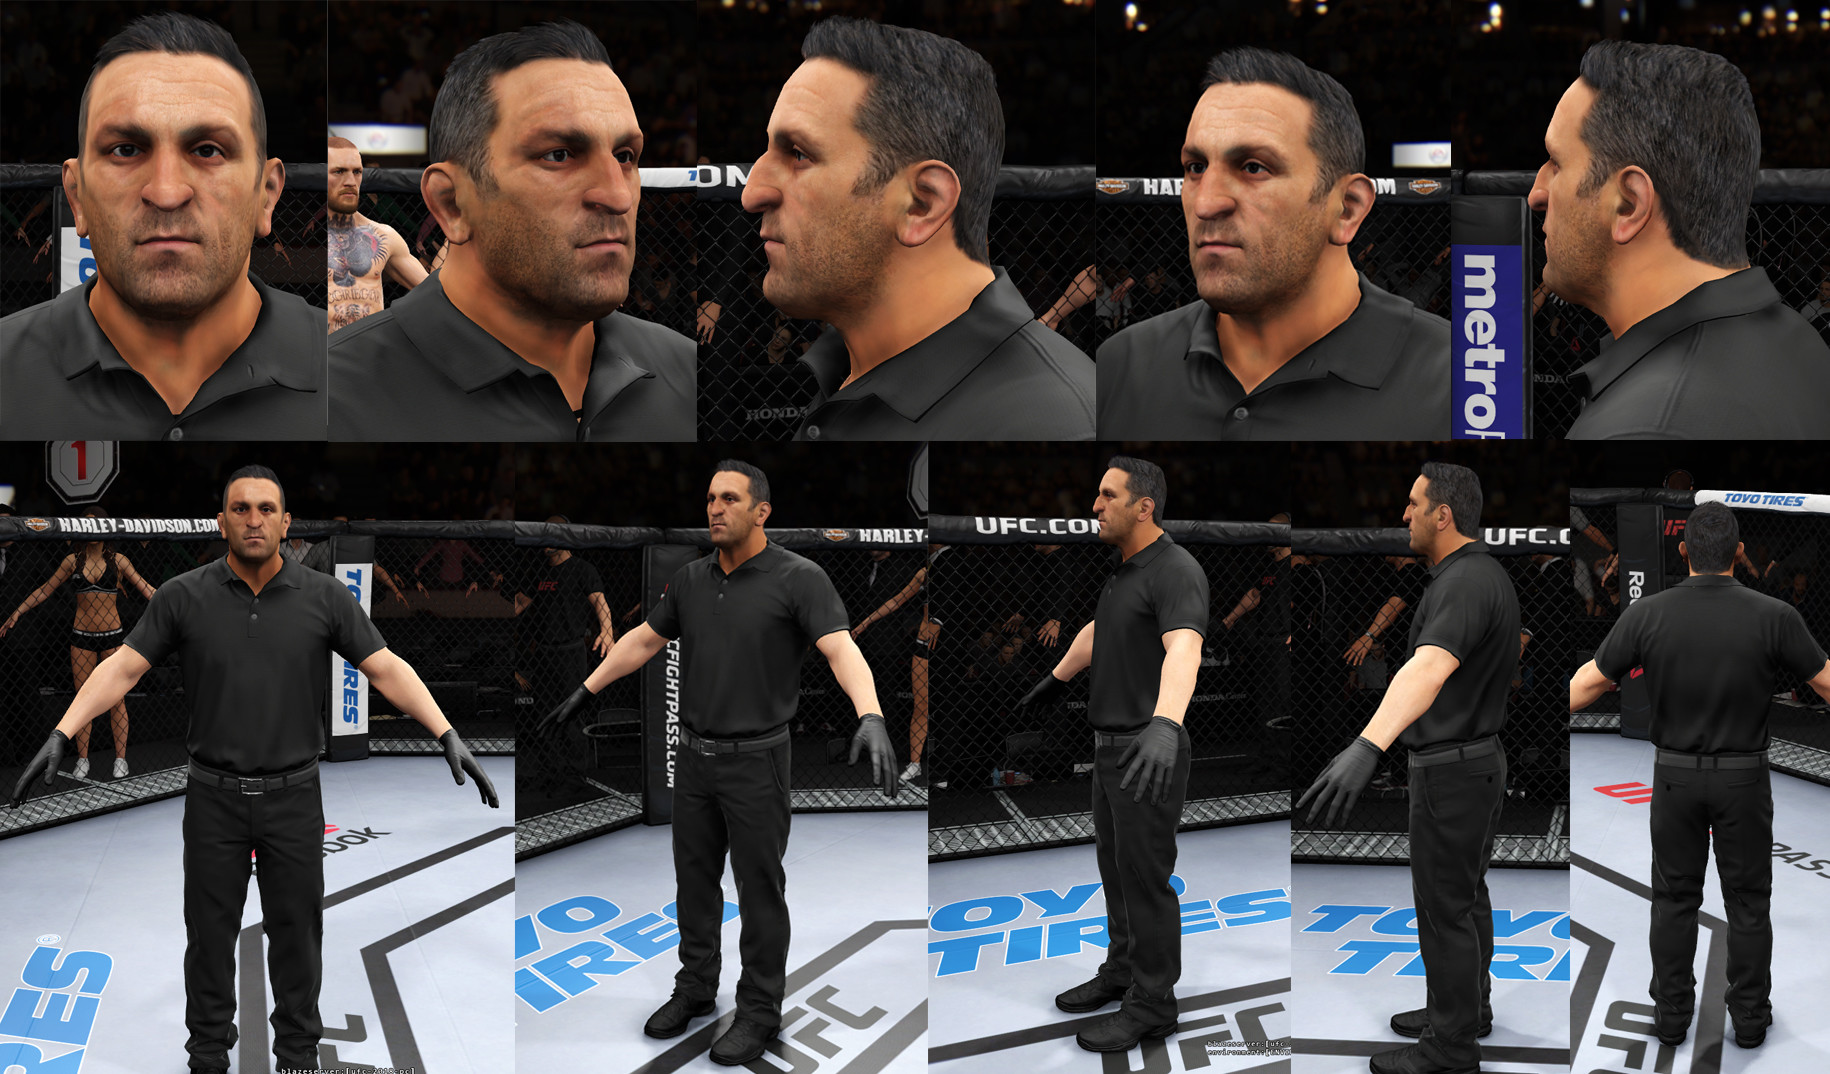 Fabricio rezende capture in game referee 02